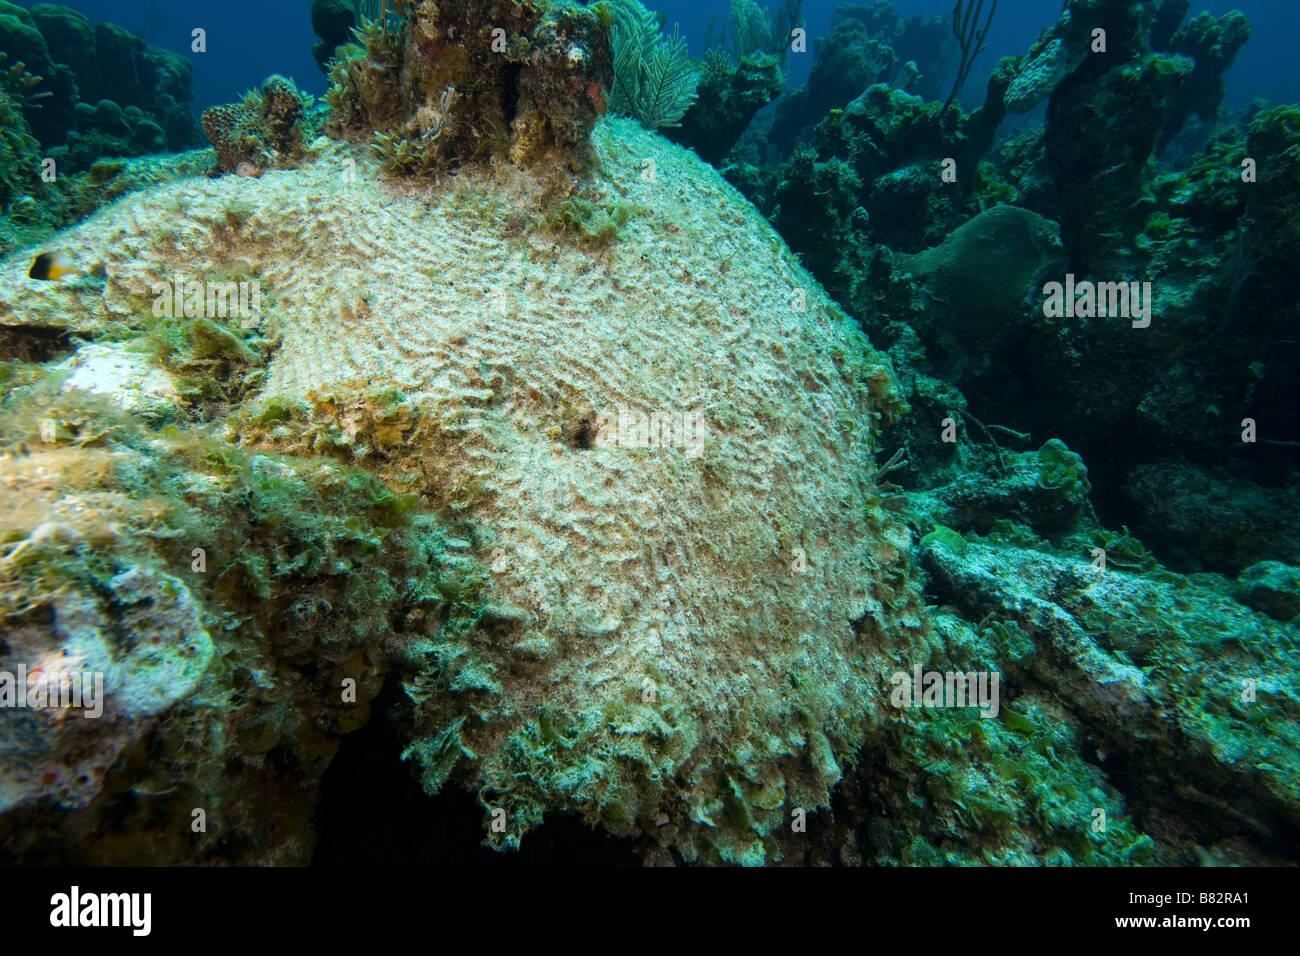 Bleached coral Bahamas, ecological disaster, dead coral, hard coral, warm water, bleaching - Stock Image